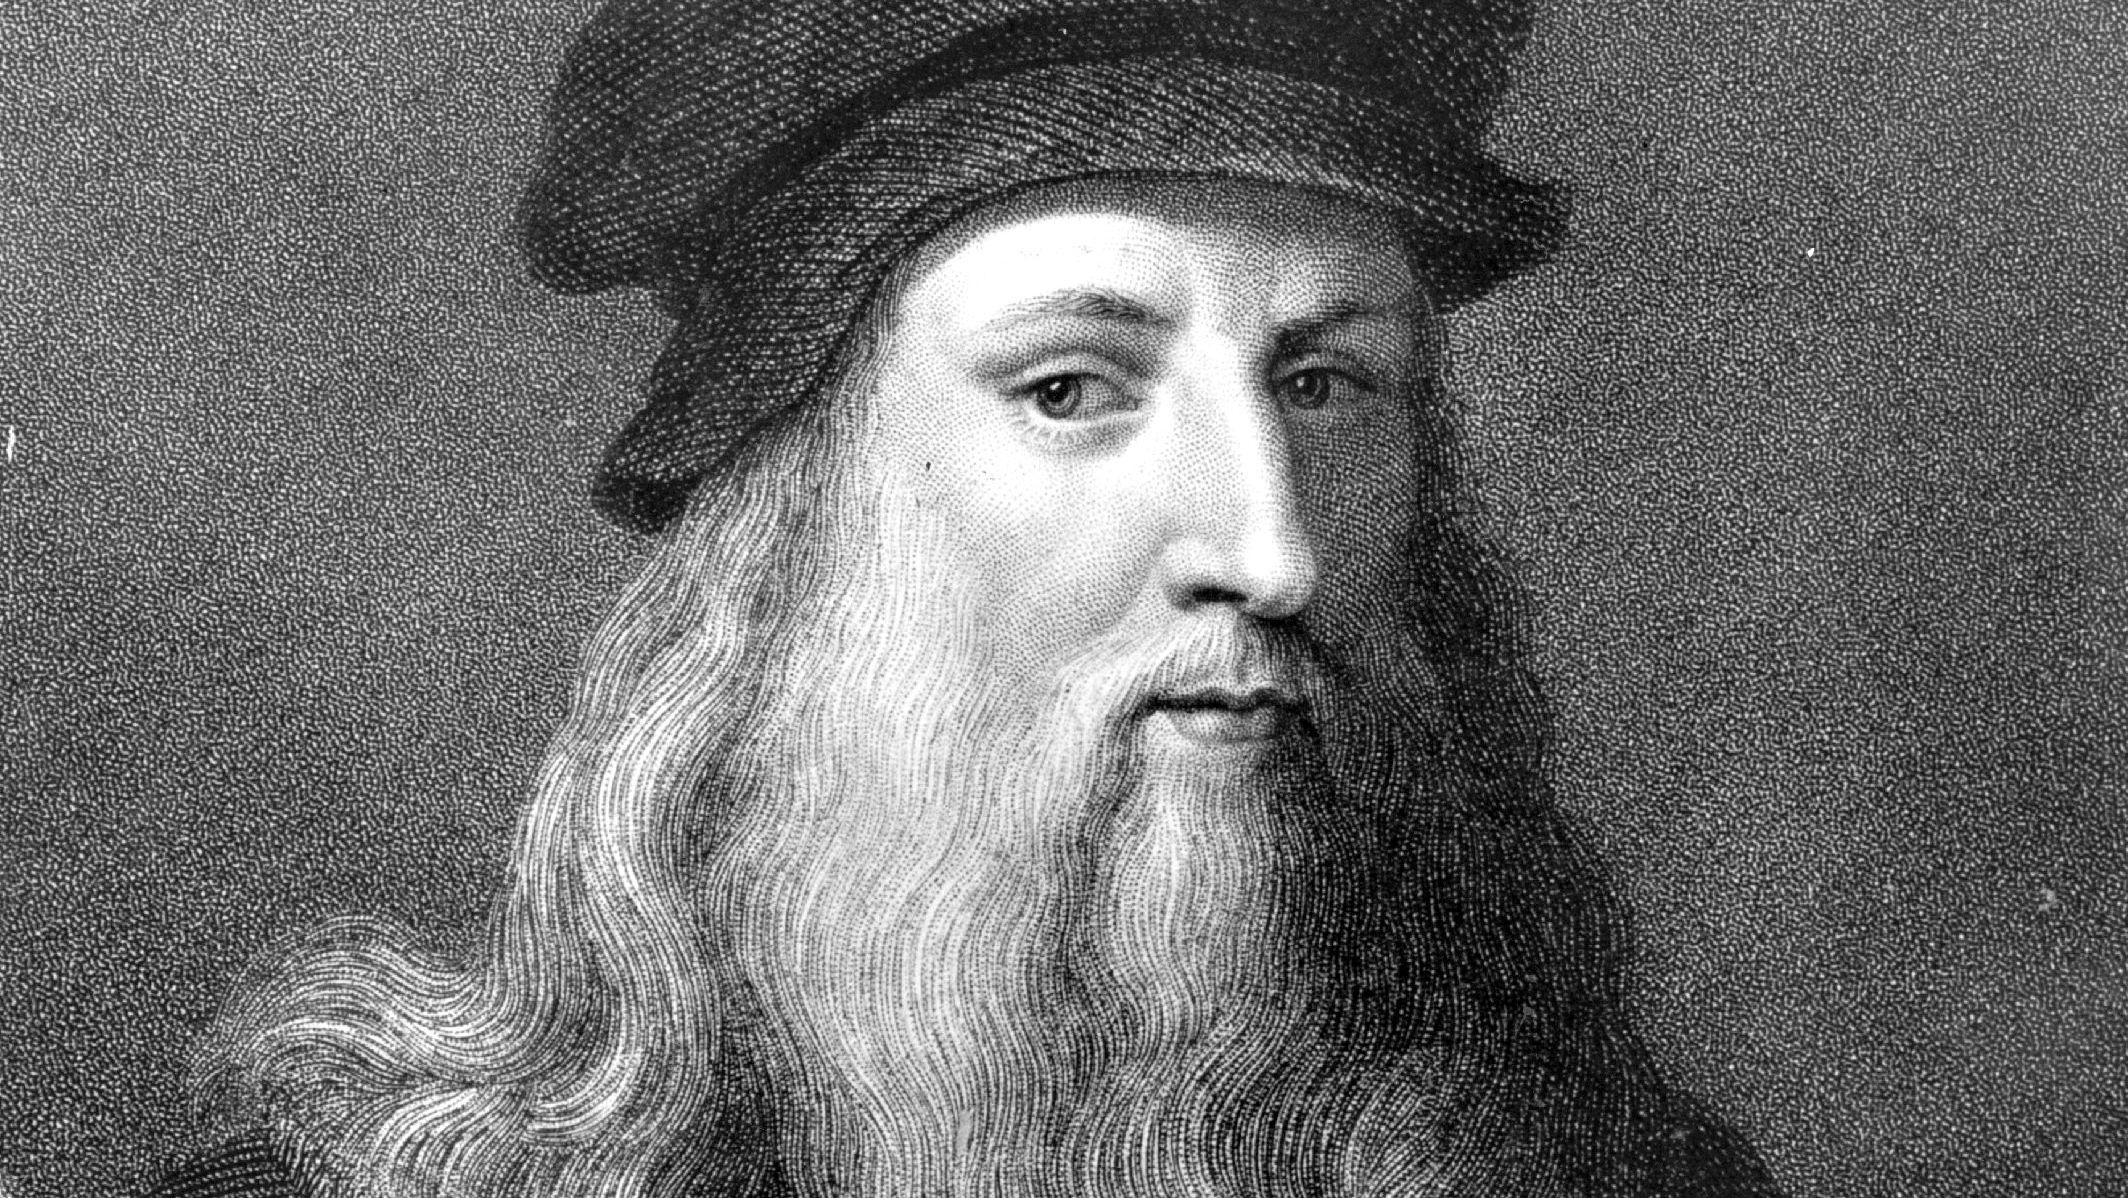 You Can Now View Leonardo da Vinci's Notebooks Online